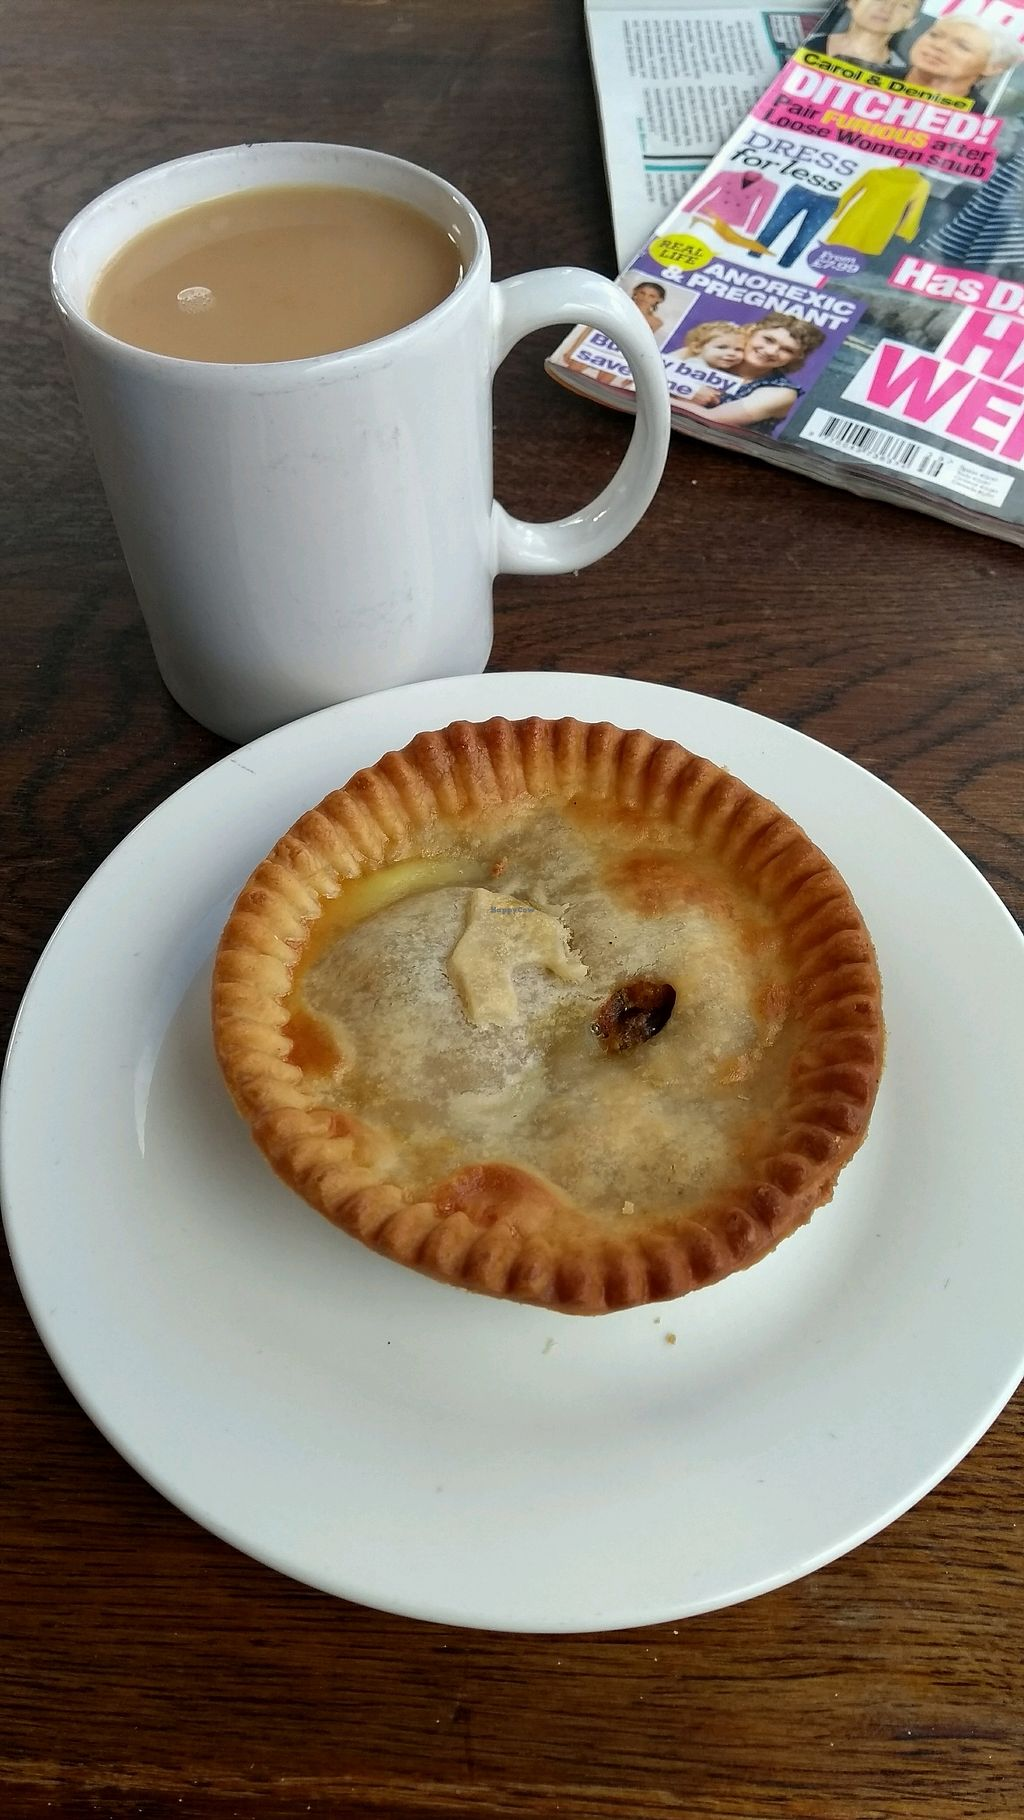 """Photo of The Get Stuffed Pie House  by <a href=""""/members/profile/Ireneveg"""">Ireneveg</a> <br/>Curry pie with tea <br/> November 5, 2017  - <a href='/contact/abuse/image/98667/322147'>Report</a>"""